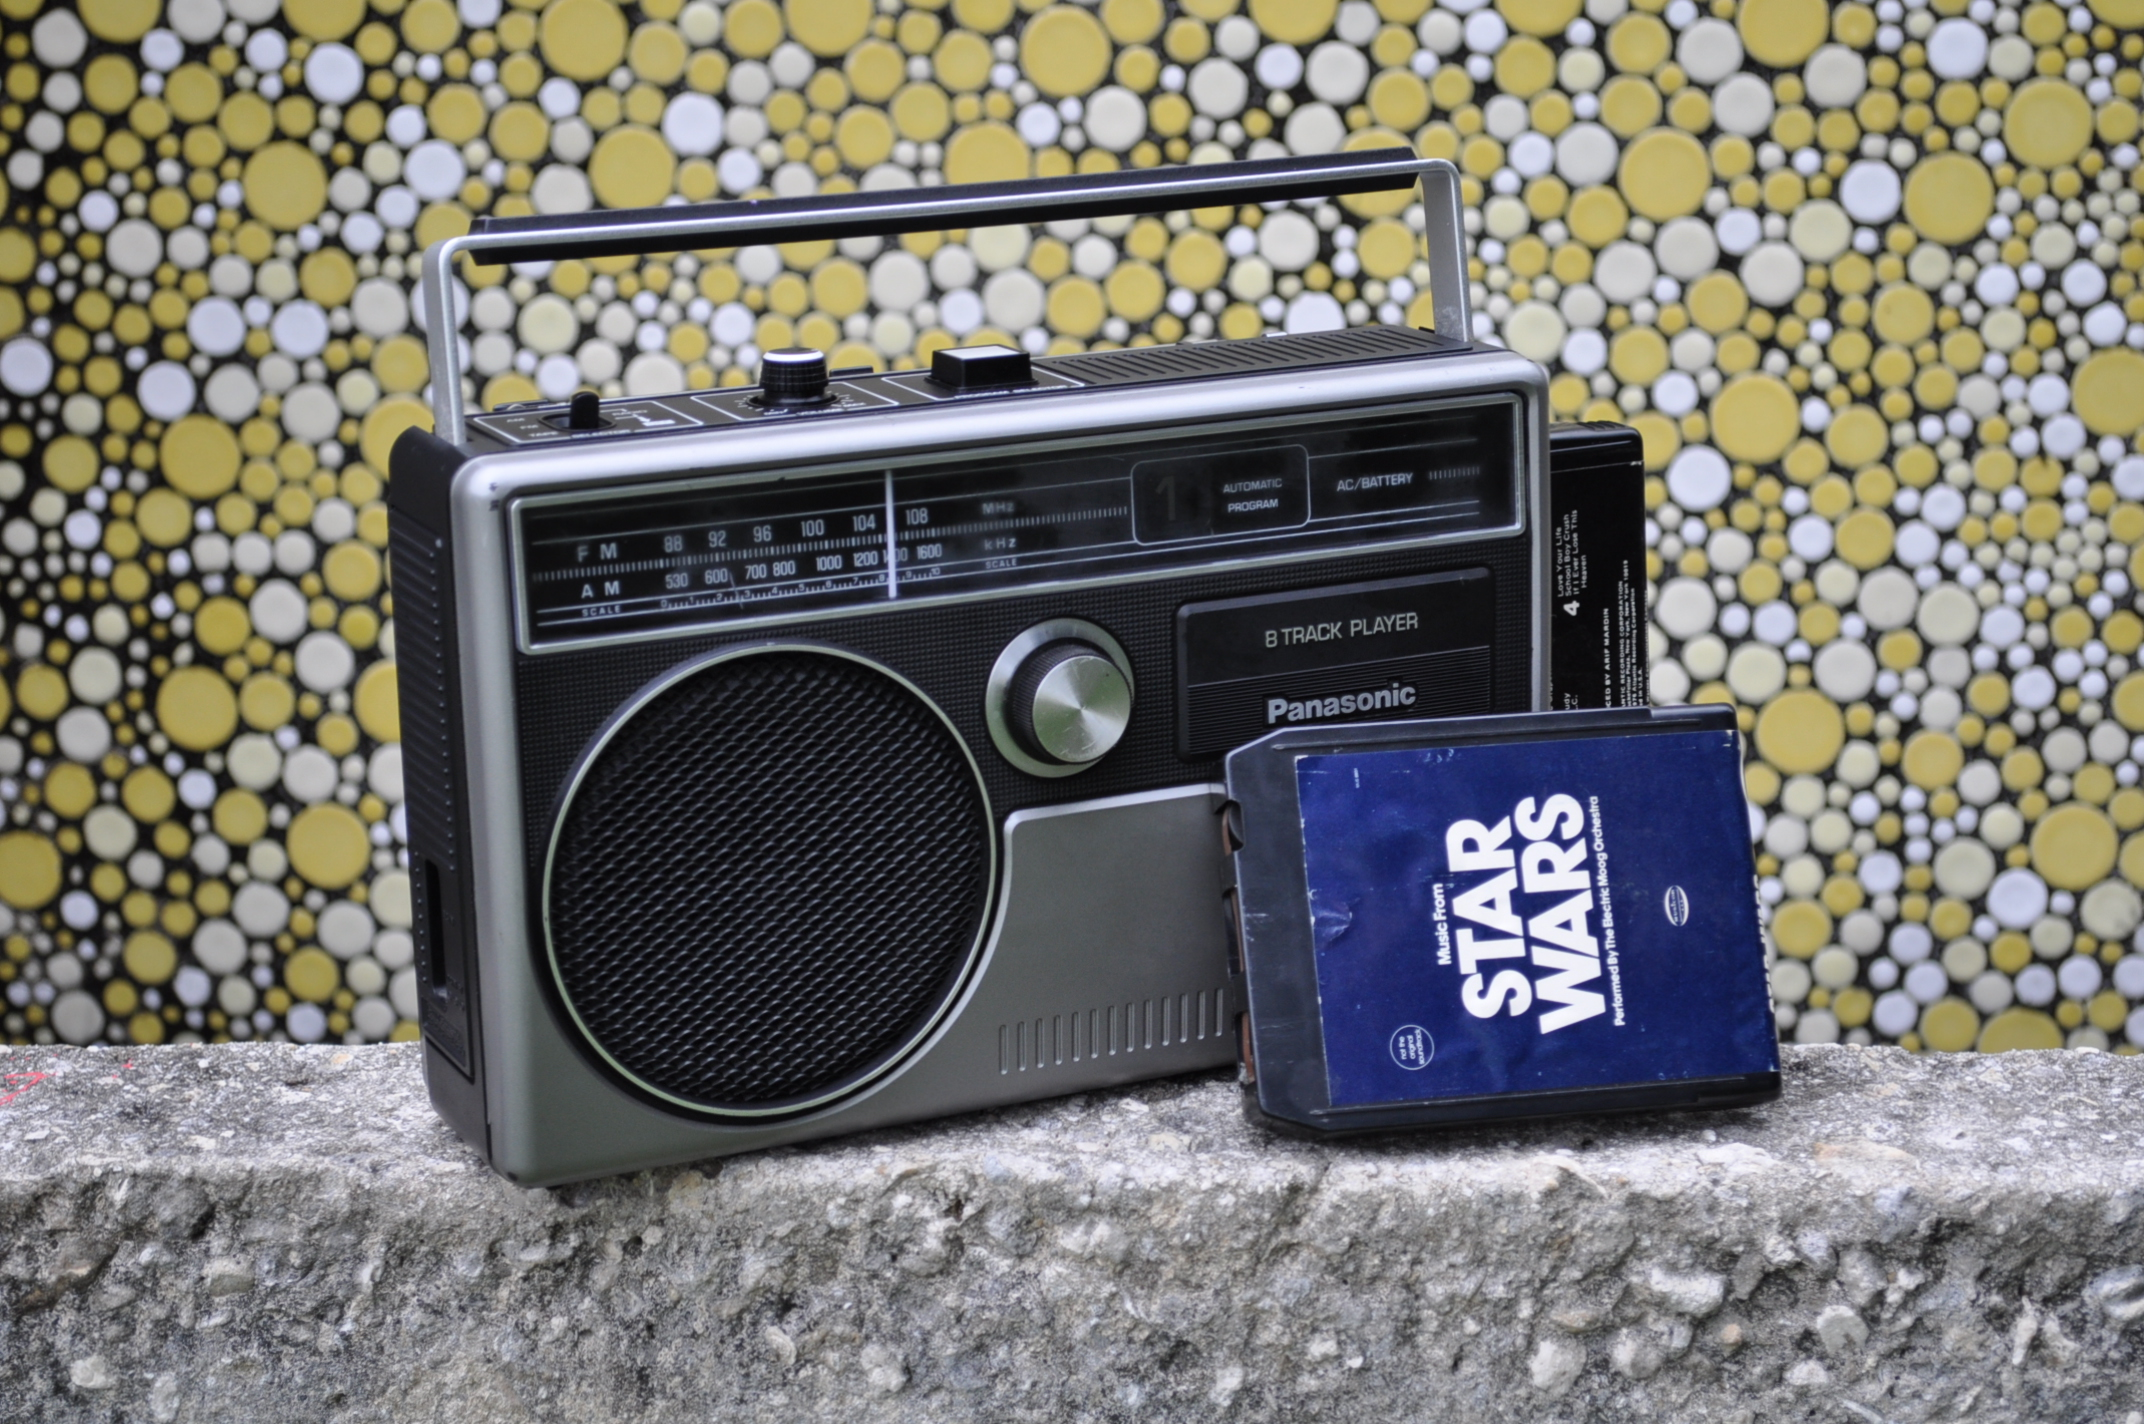 How to revive a portable 8-Track tape player